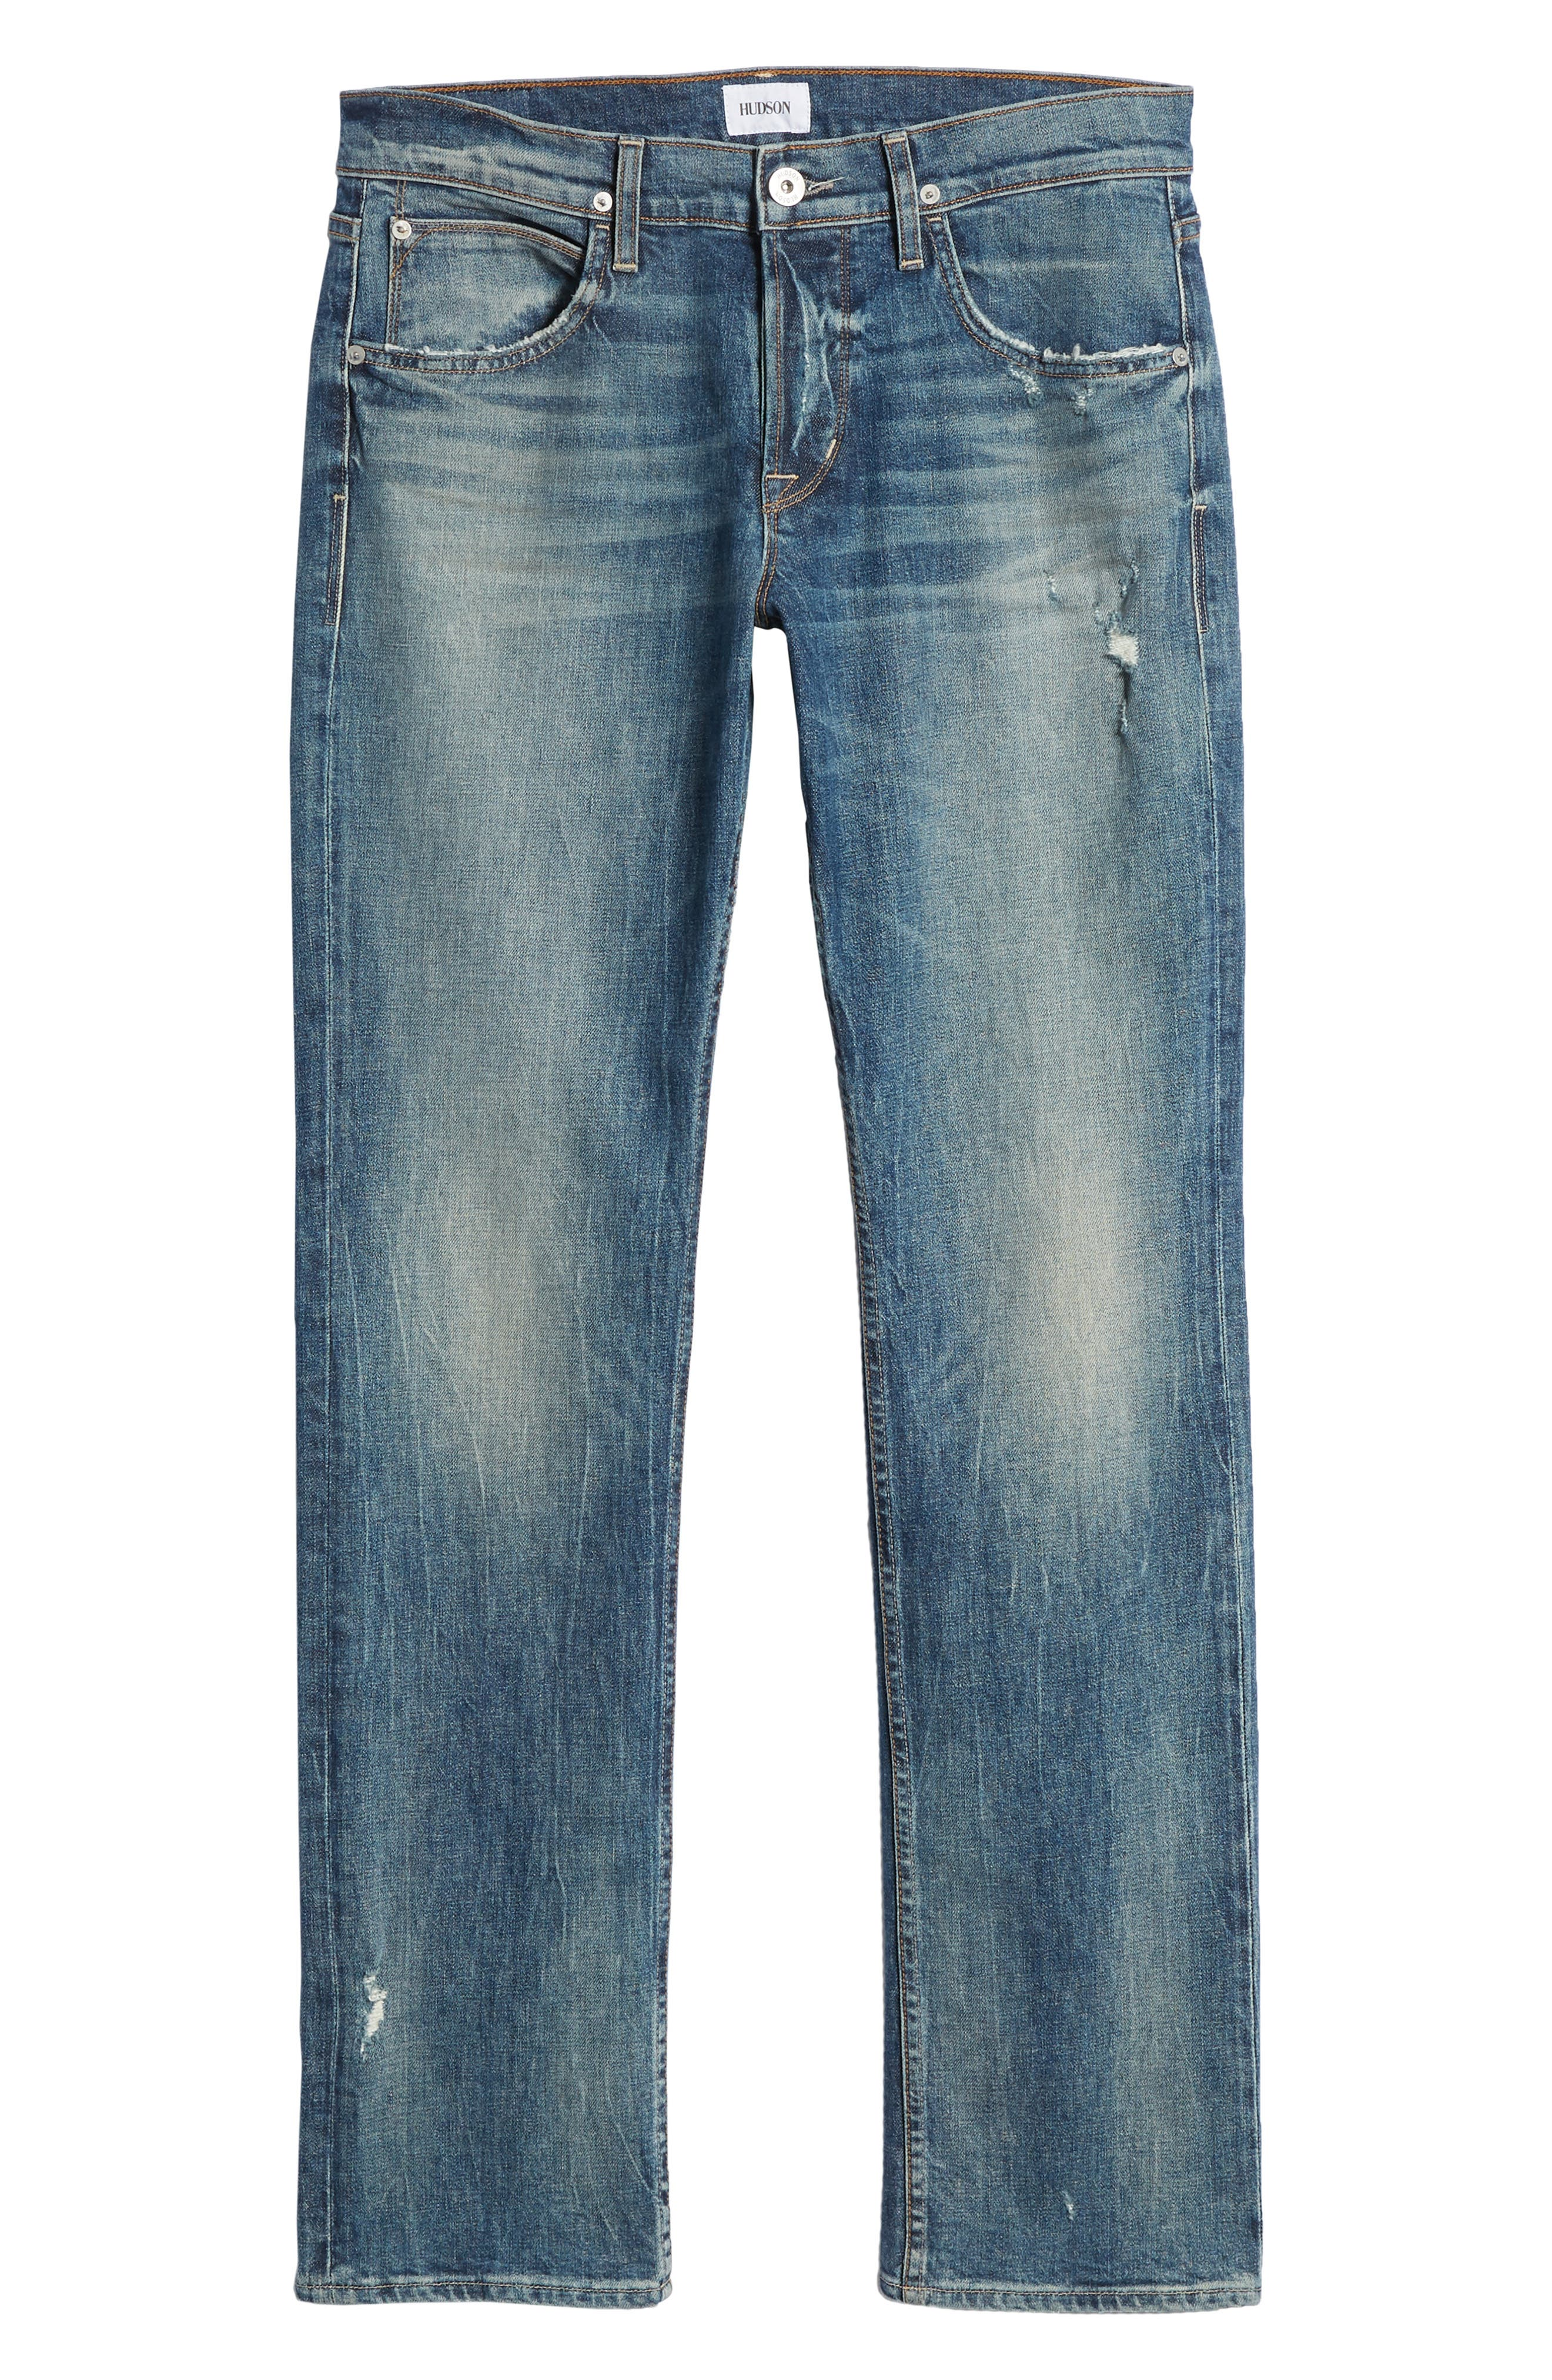 Byron Slim Straight Fit Jeans,                             Alternate thumbnail 6, color,                             Hang Up